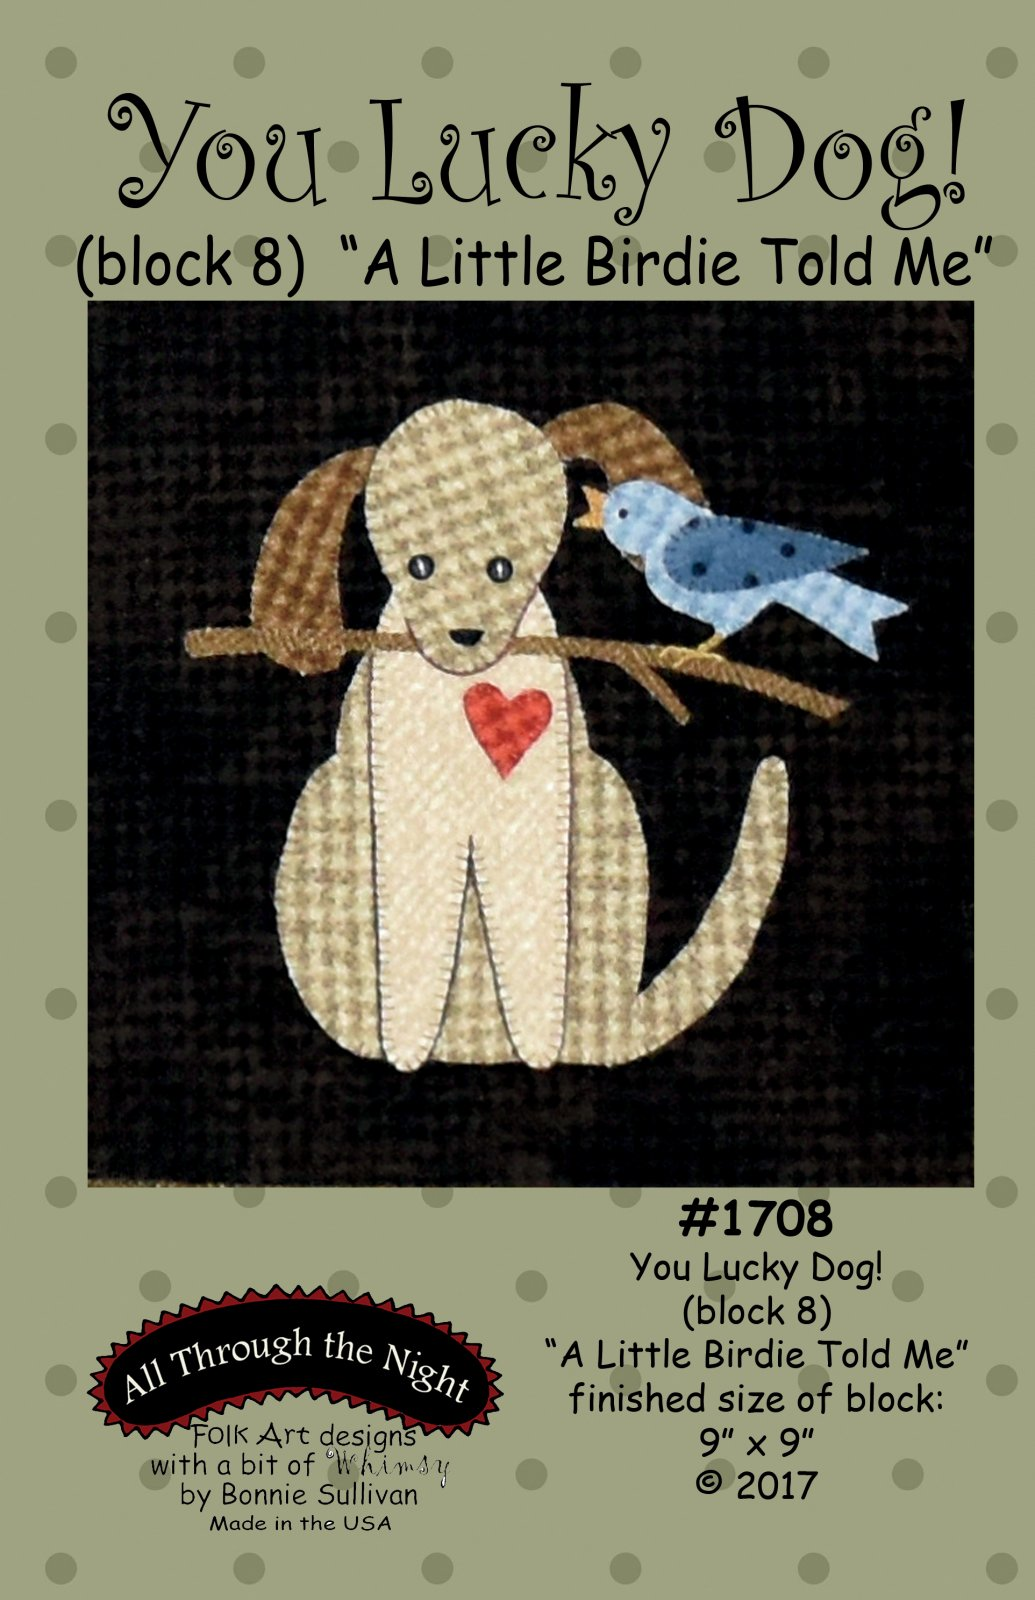 1708 You Lucky Dog A Little Birdie Told Me